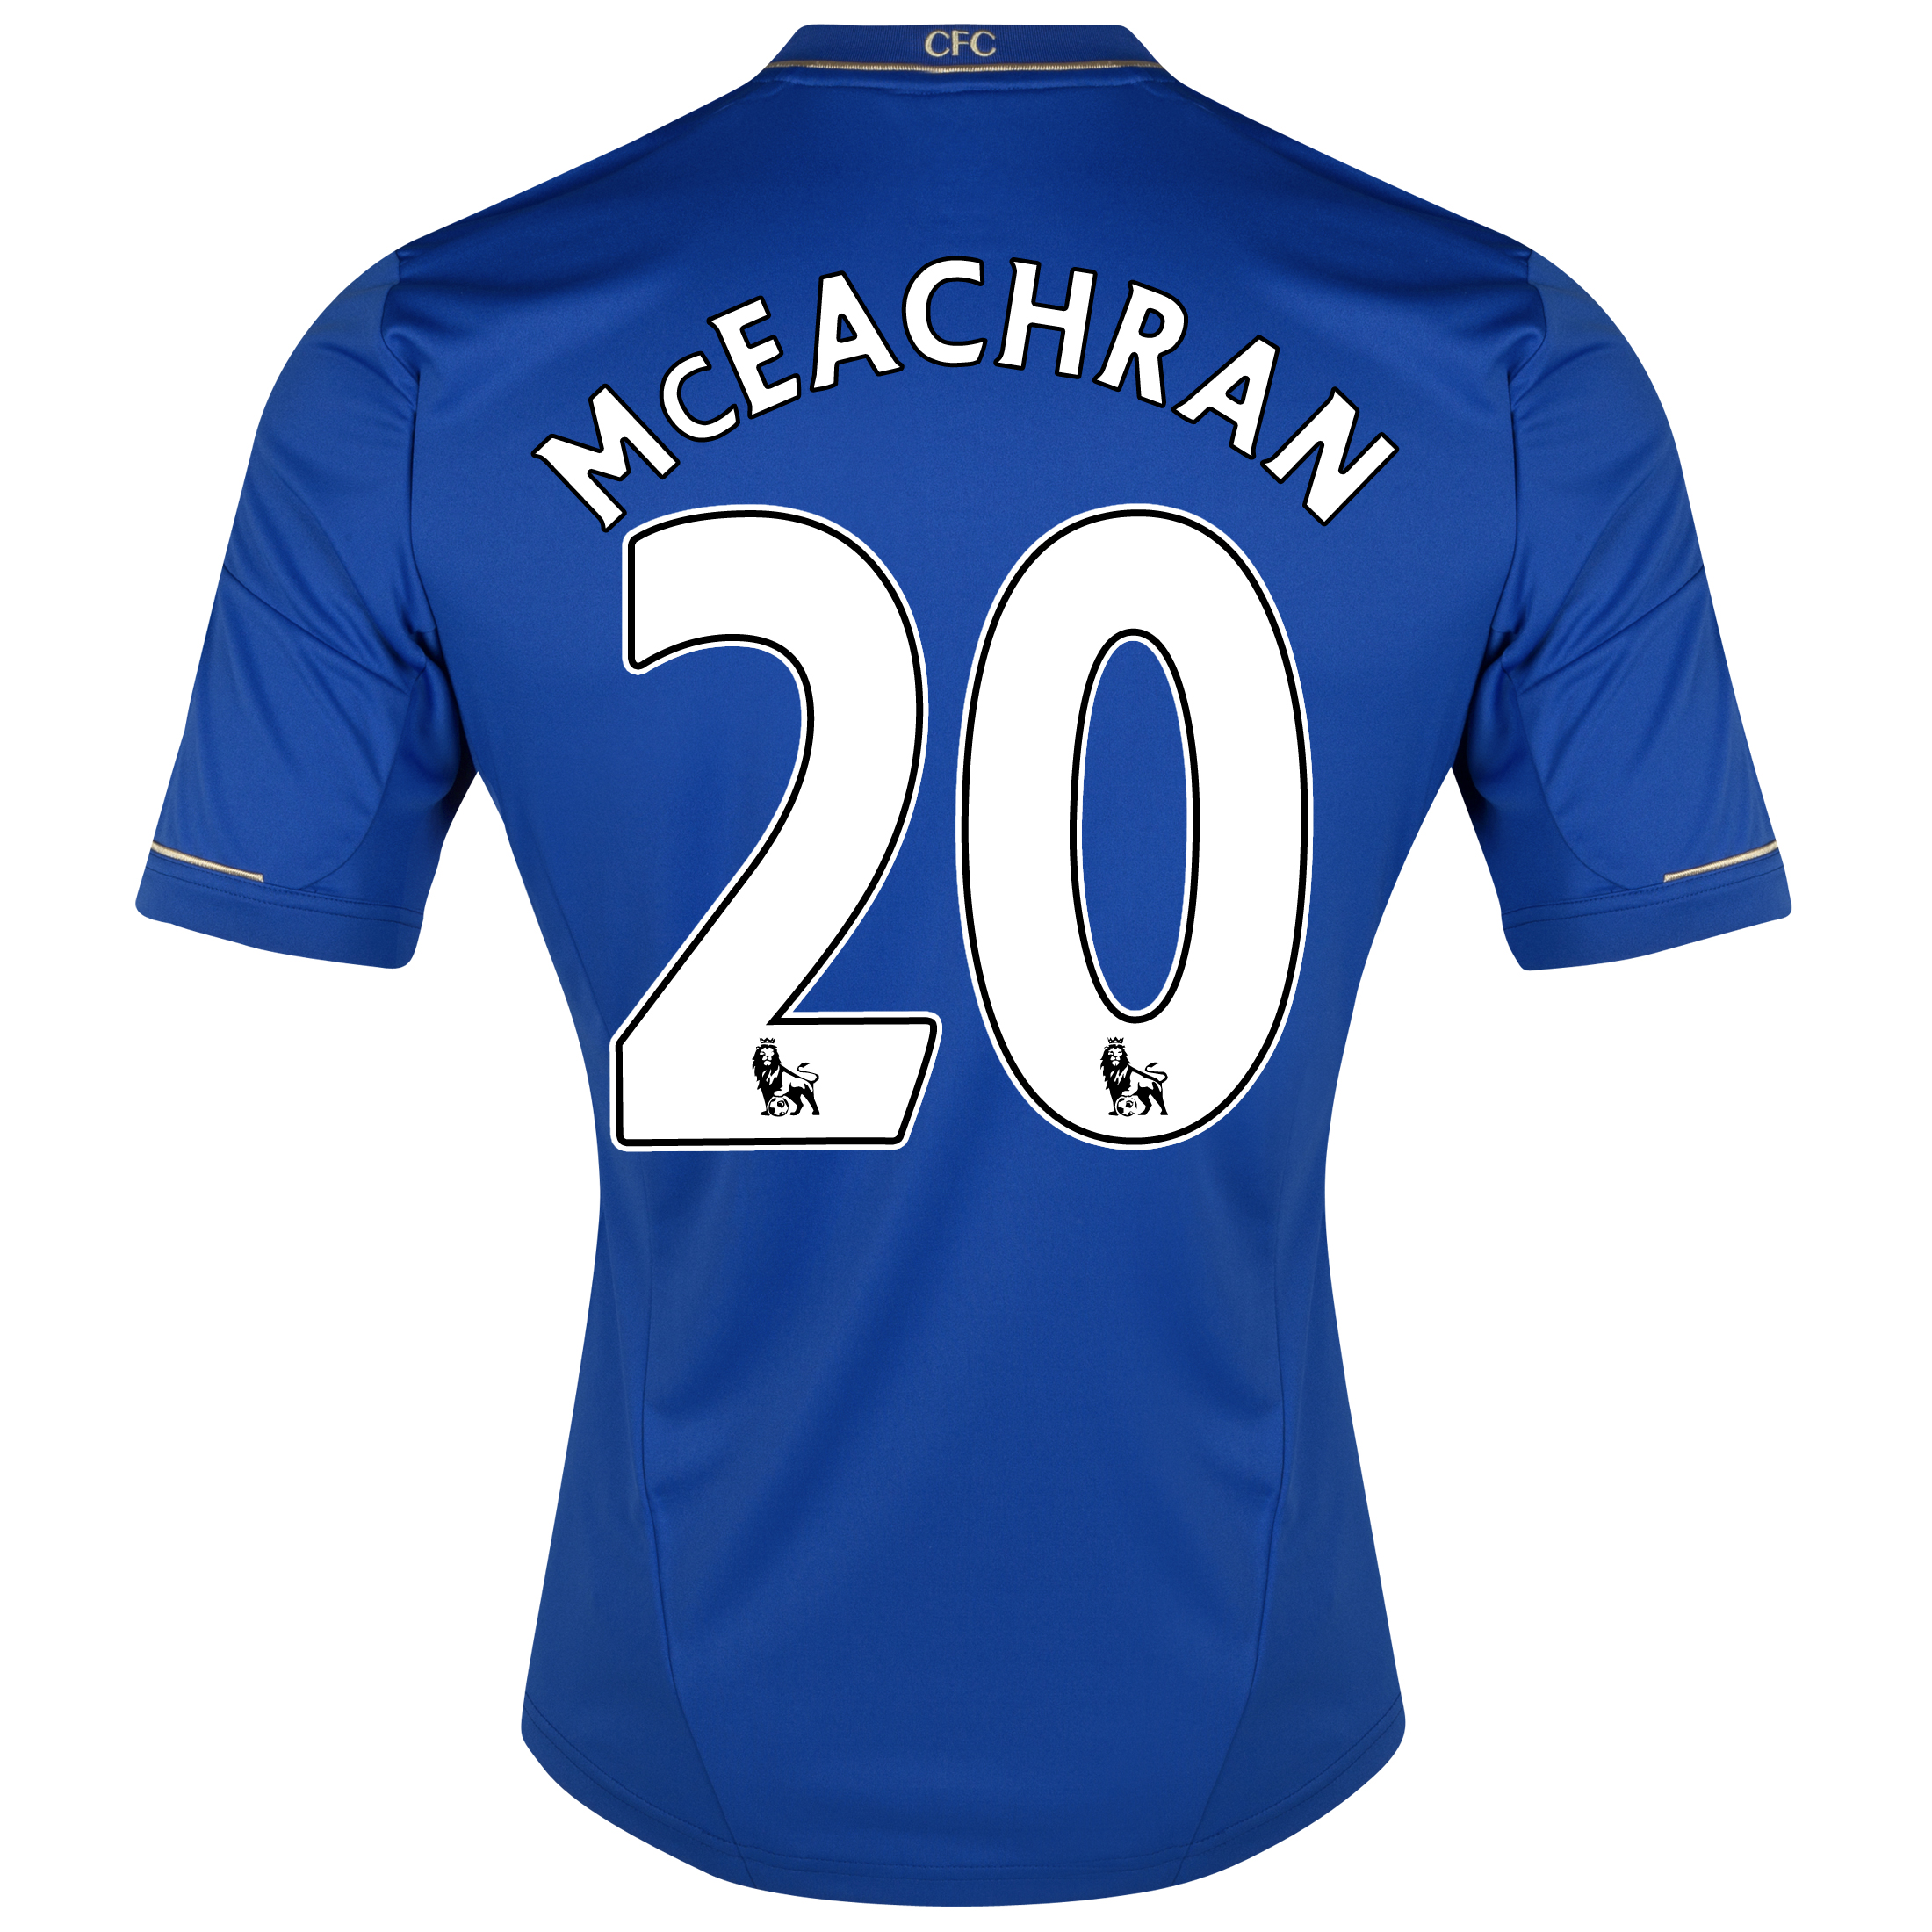 Chelsea Home Shirt 2012/13 with McEachran 20 printing